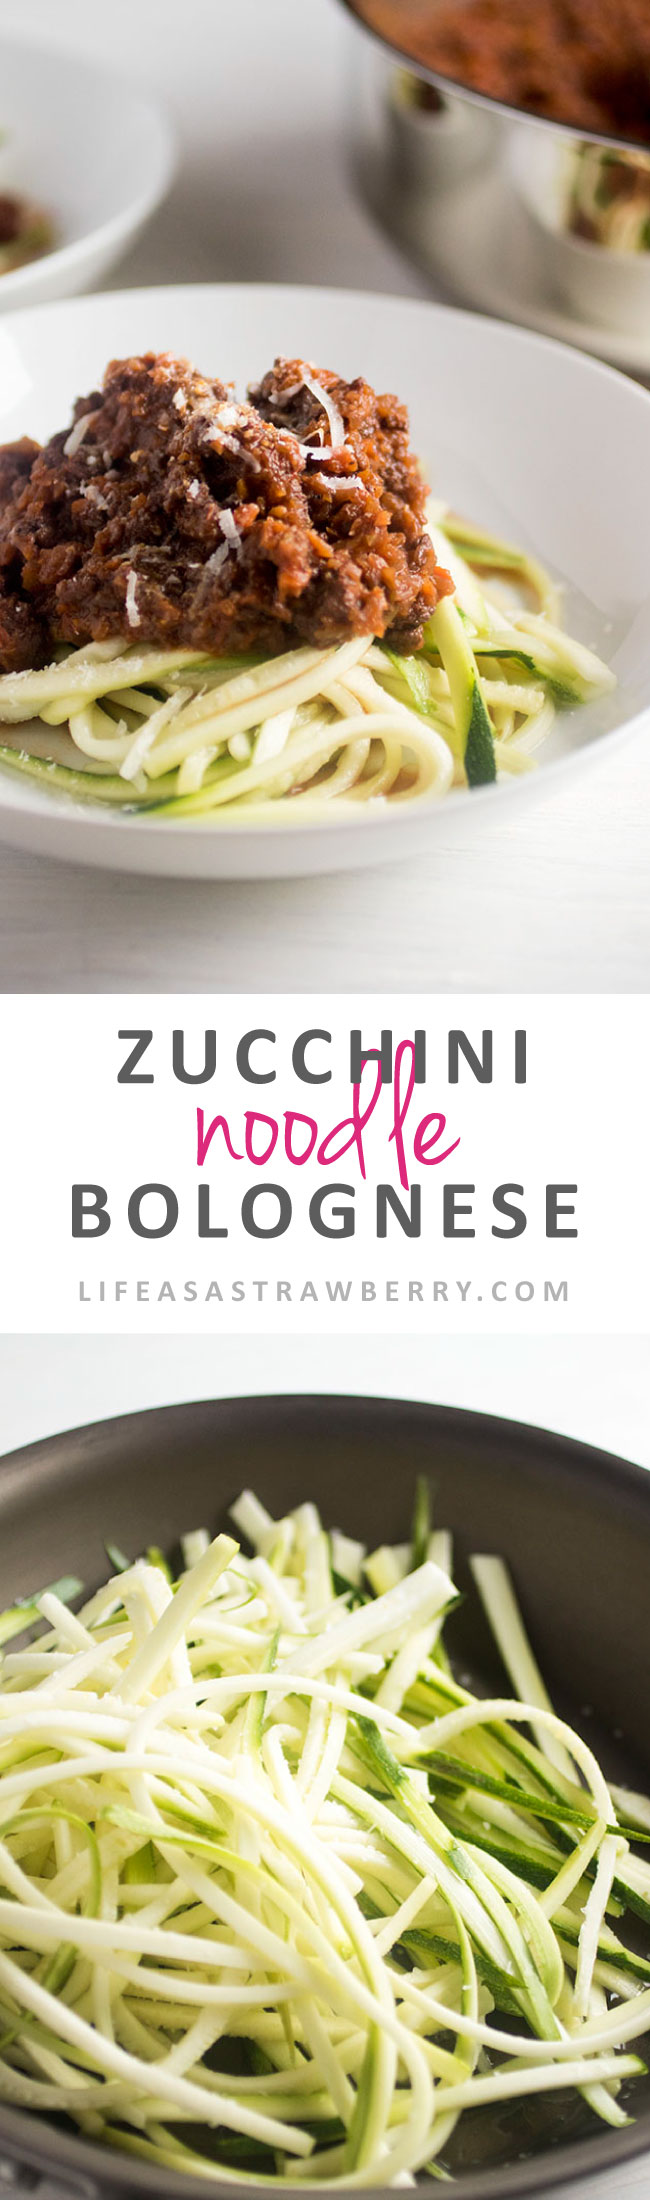 Zucchini Noodle Bolognese - Lighten up a classic pasta recipe with this easy zoodle bolognese recipe! Low-carb, healthy recipe with zucchini noodles and a veggie -based, rich red wine pasta bolognese sauce. Perfect healthy spaghetti for quick weeknight meals. How to make zucchini noodles - without a spiralizer! Use ground turkey instead of beef for an even lighter option. | lifeasastrawberry.com